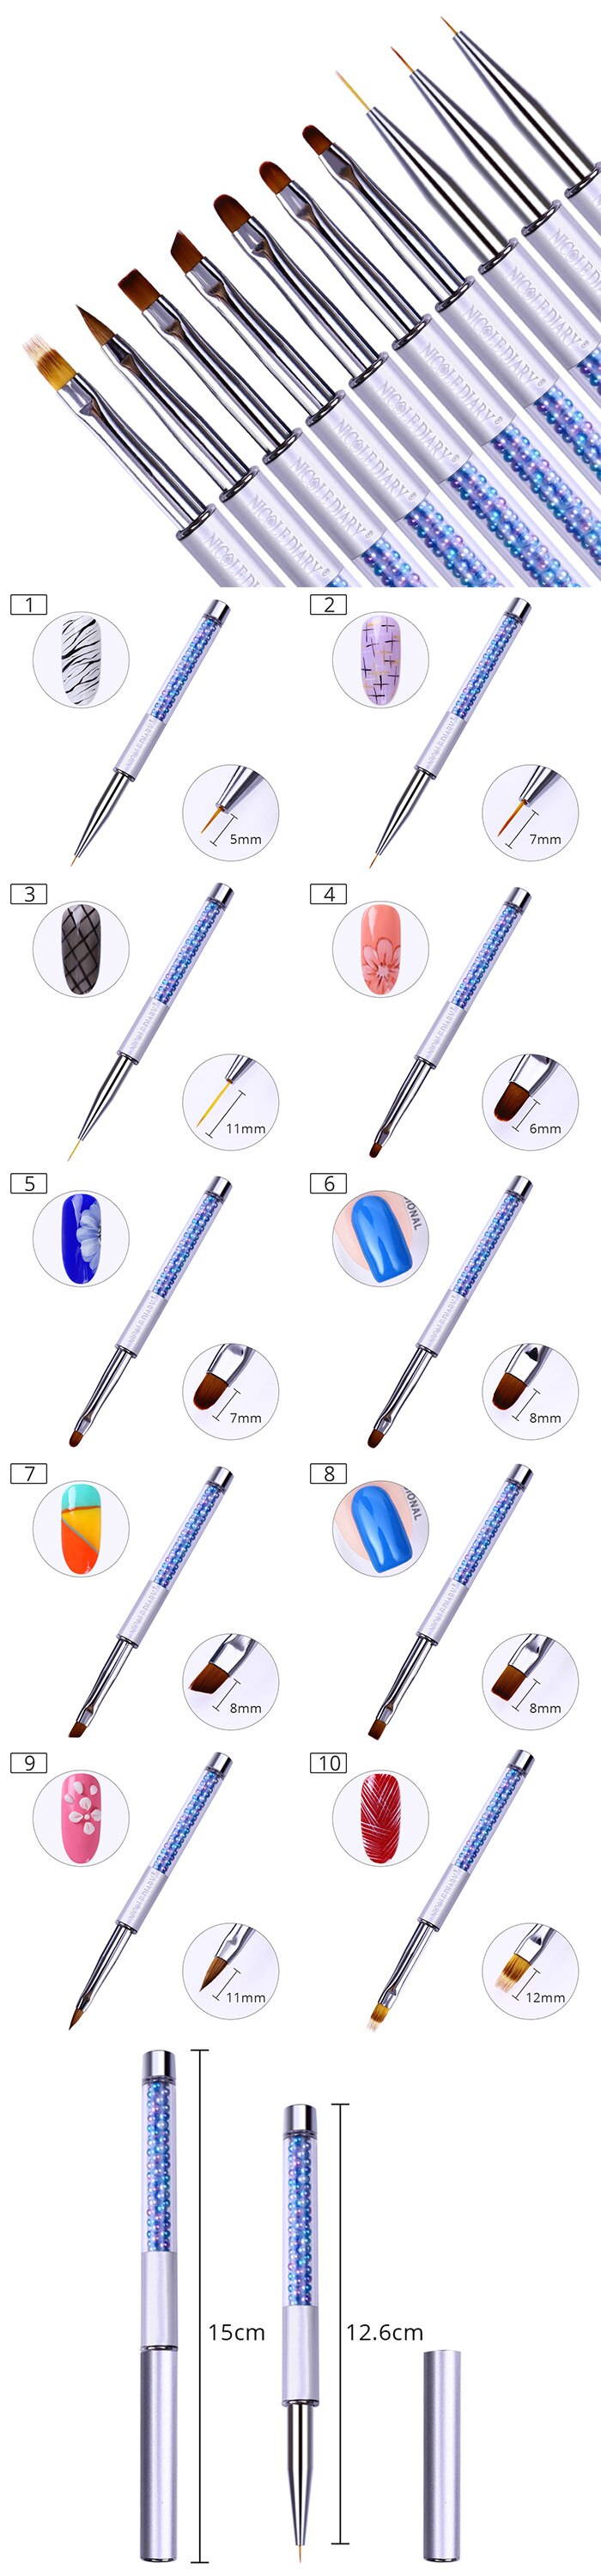 very useful designer acrylic and gel brushes for nails